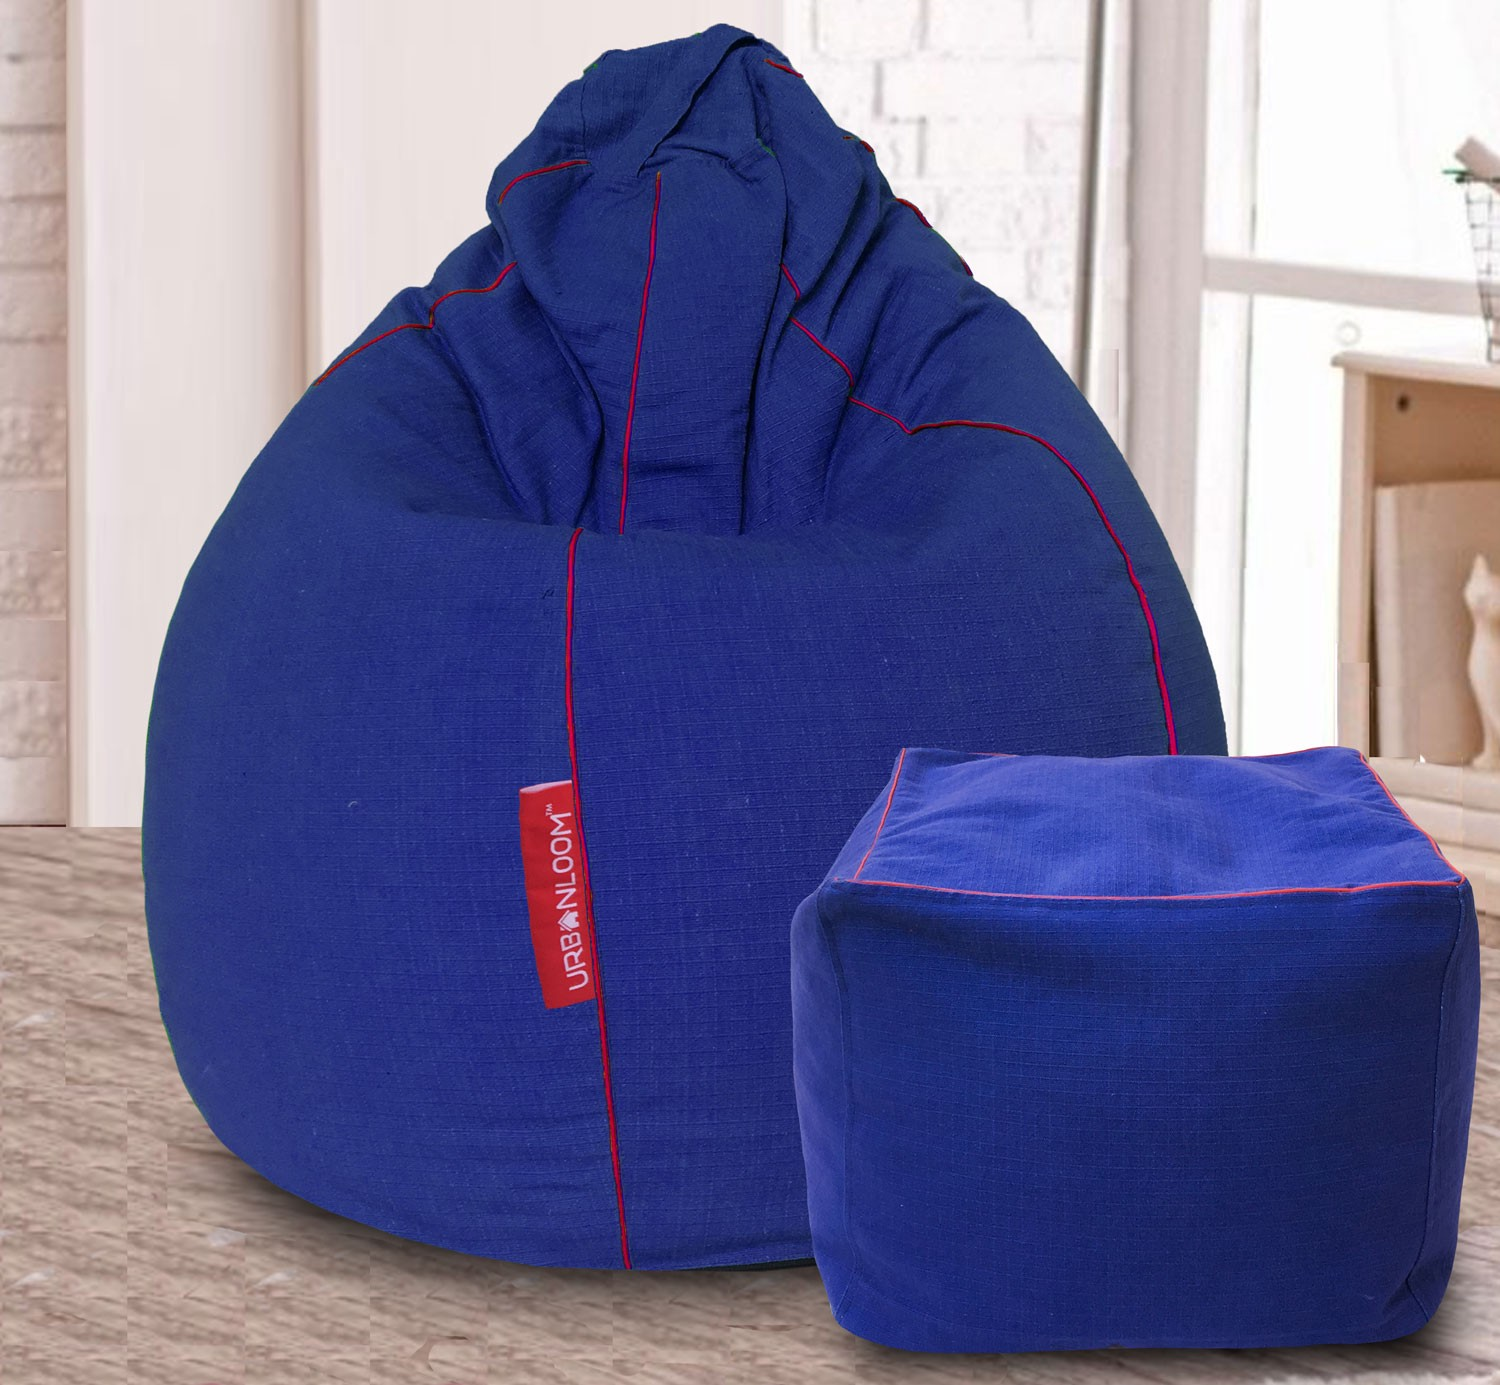 Bean Bag Footstool How Do I Select The Size Of A Bean Bag Urbanloom Medium